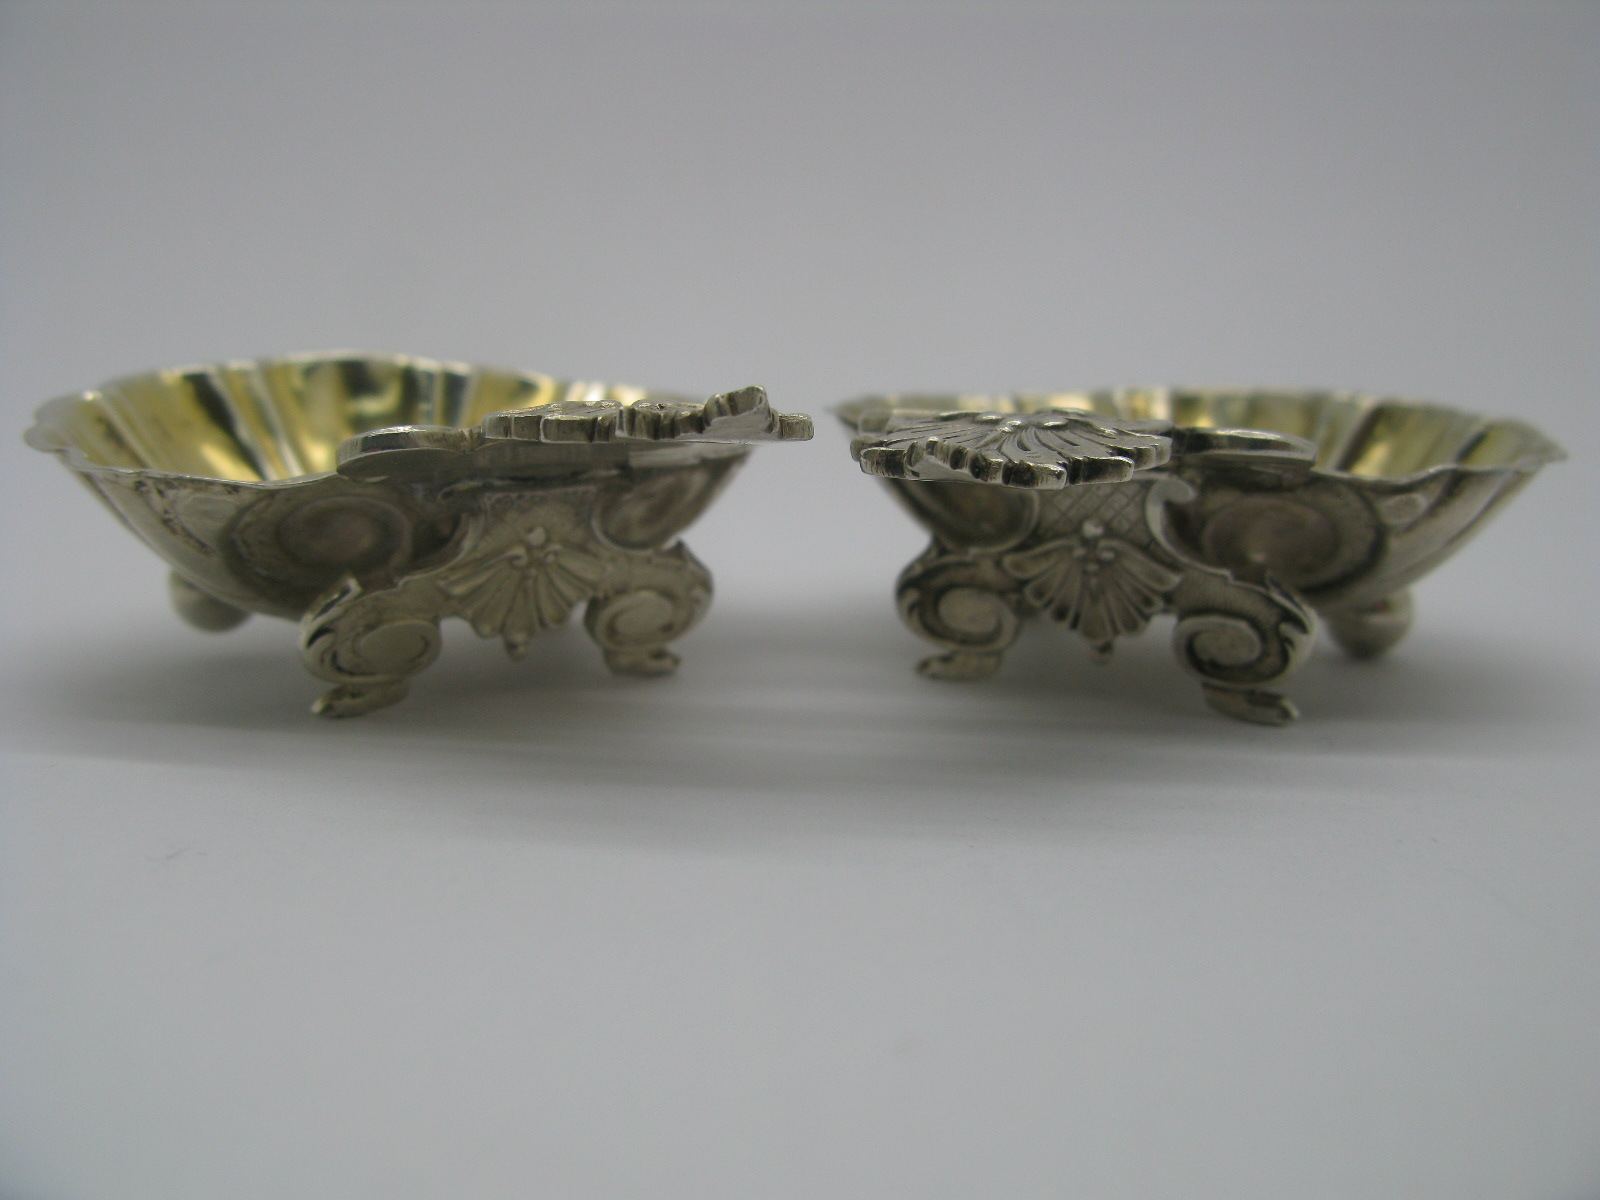 Lot 13 - Gustav Marmuse; A Pair of Highly Decorative French Salts, the gilt lined shell bowls with applied